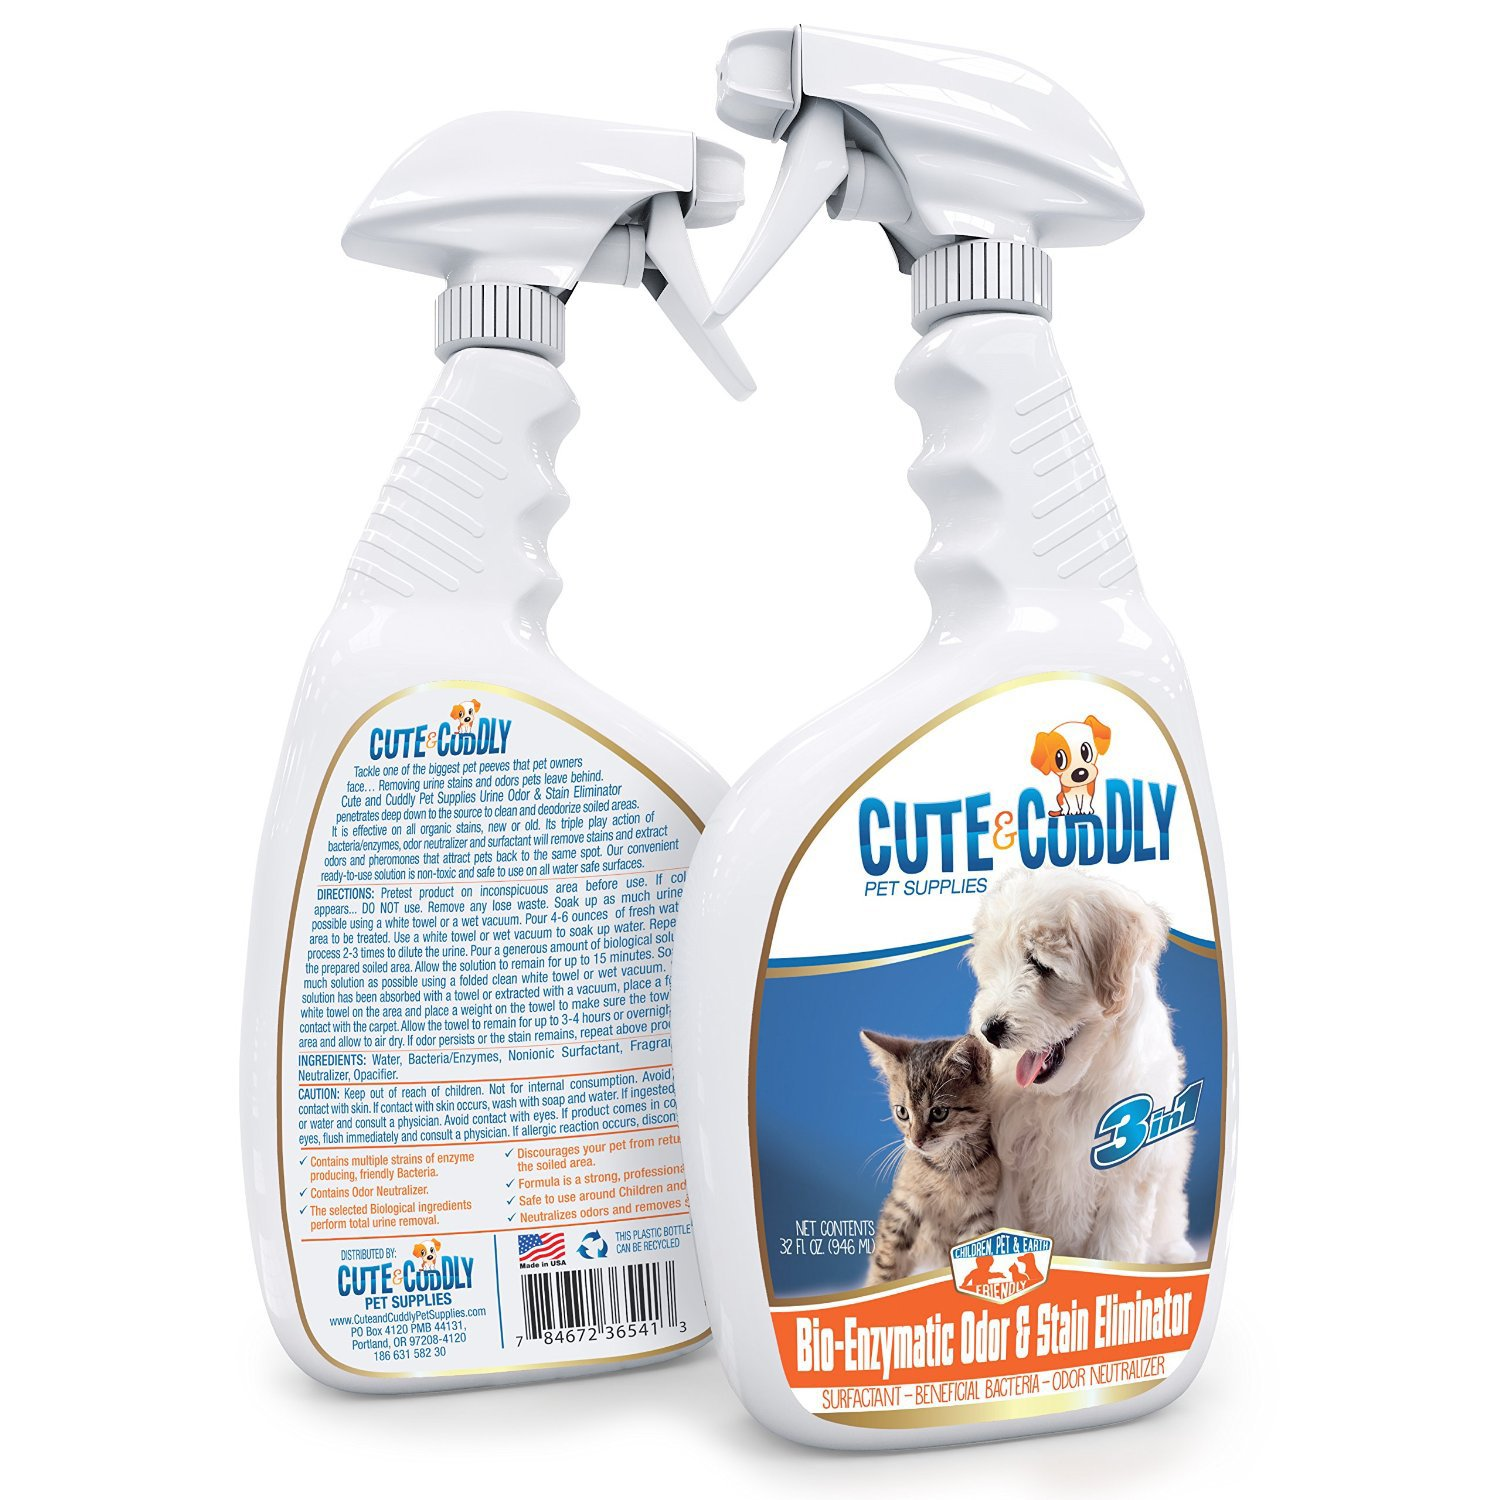 Pet Stain and Odor Remover Spray by Cute and Cuddly Pet Supplies. Clear Your Home Of Pet Smells and Pee Stains. 32 OZ. by Cute and Cuddly Pet Supplies: ...